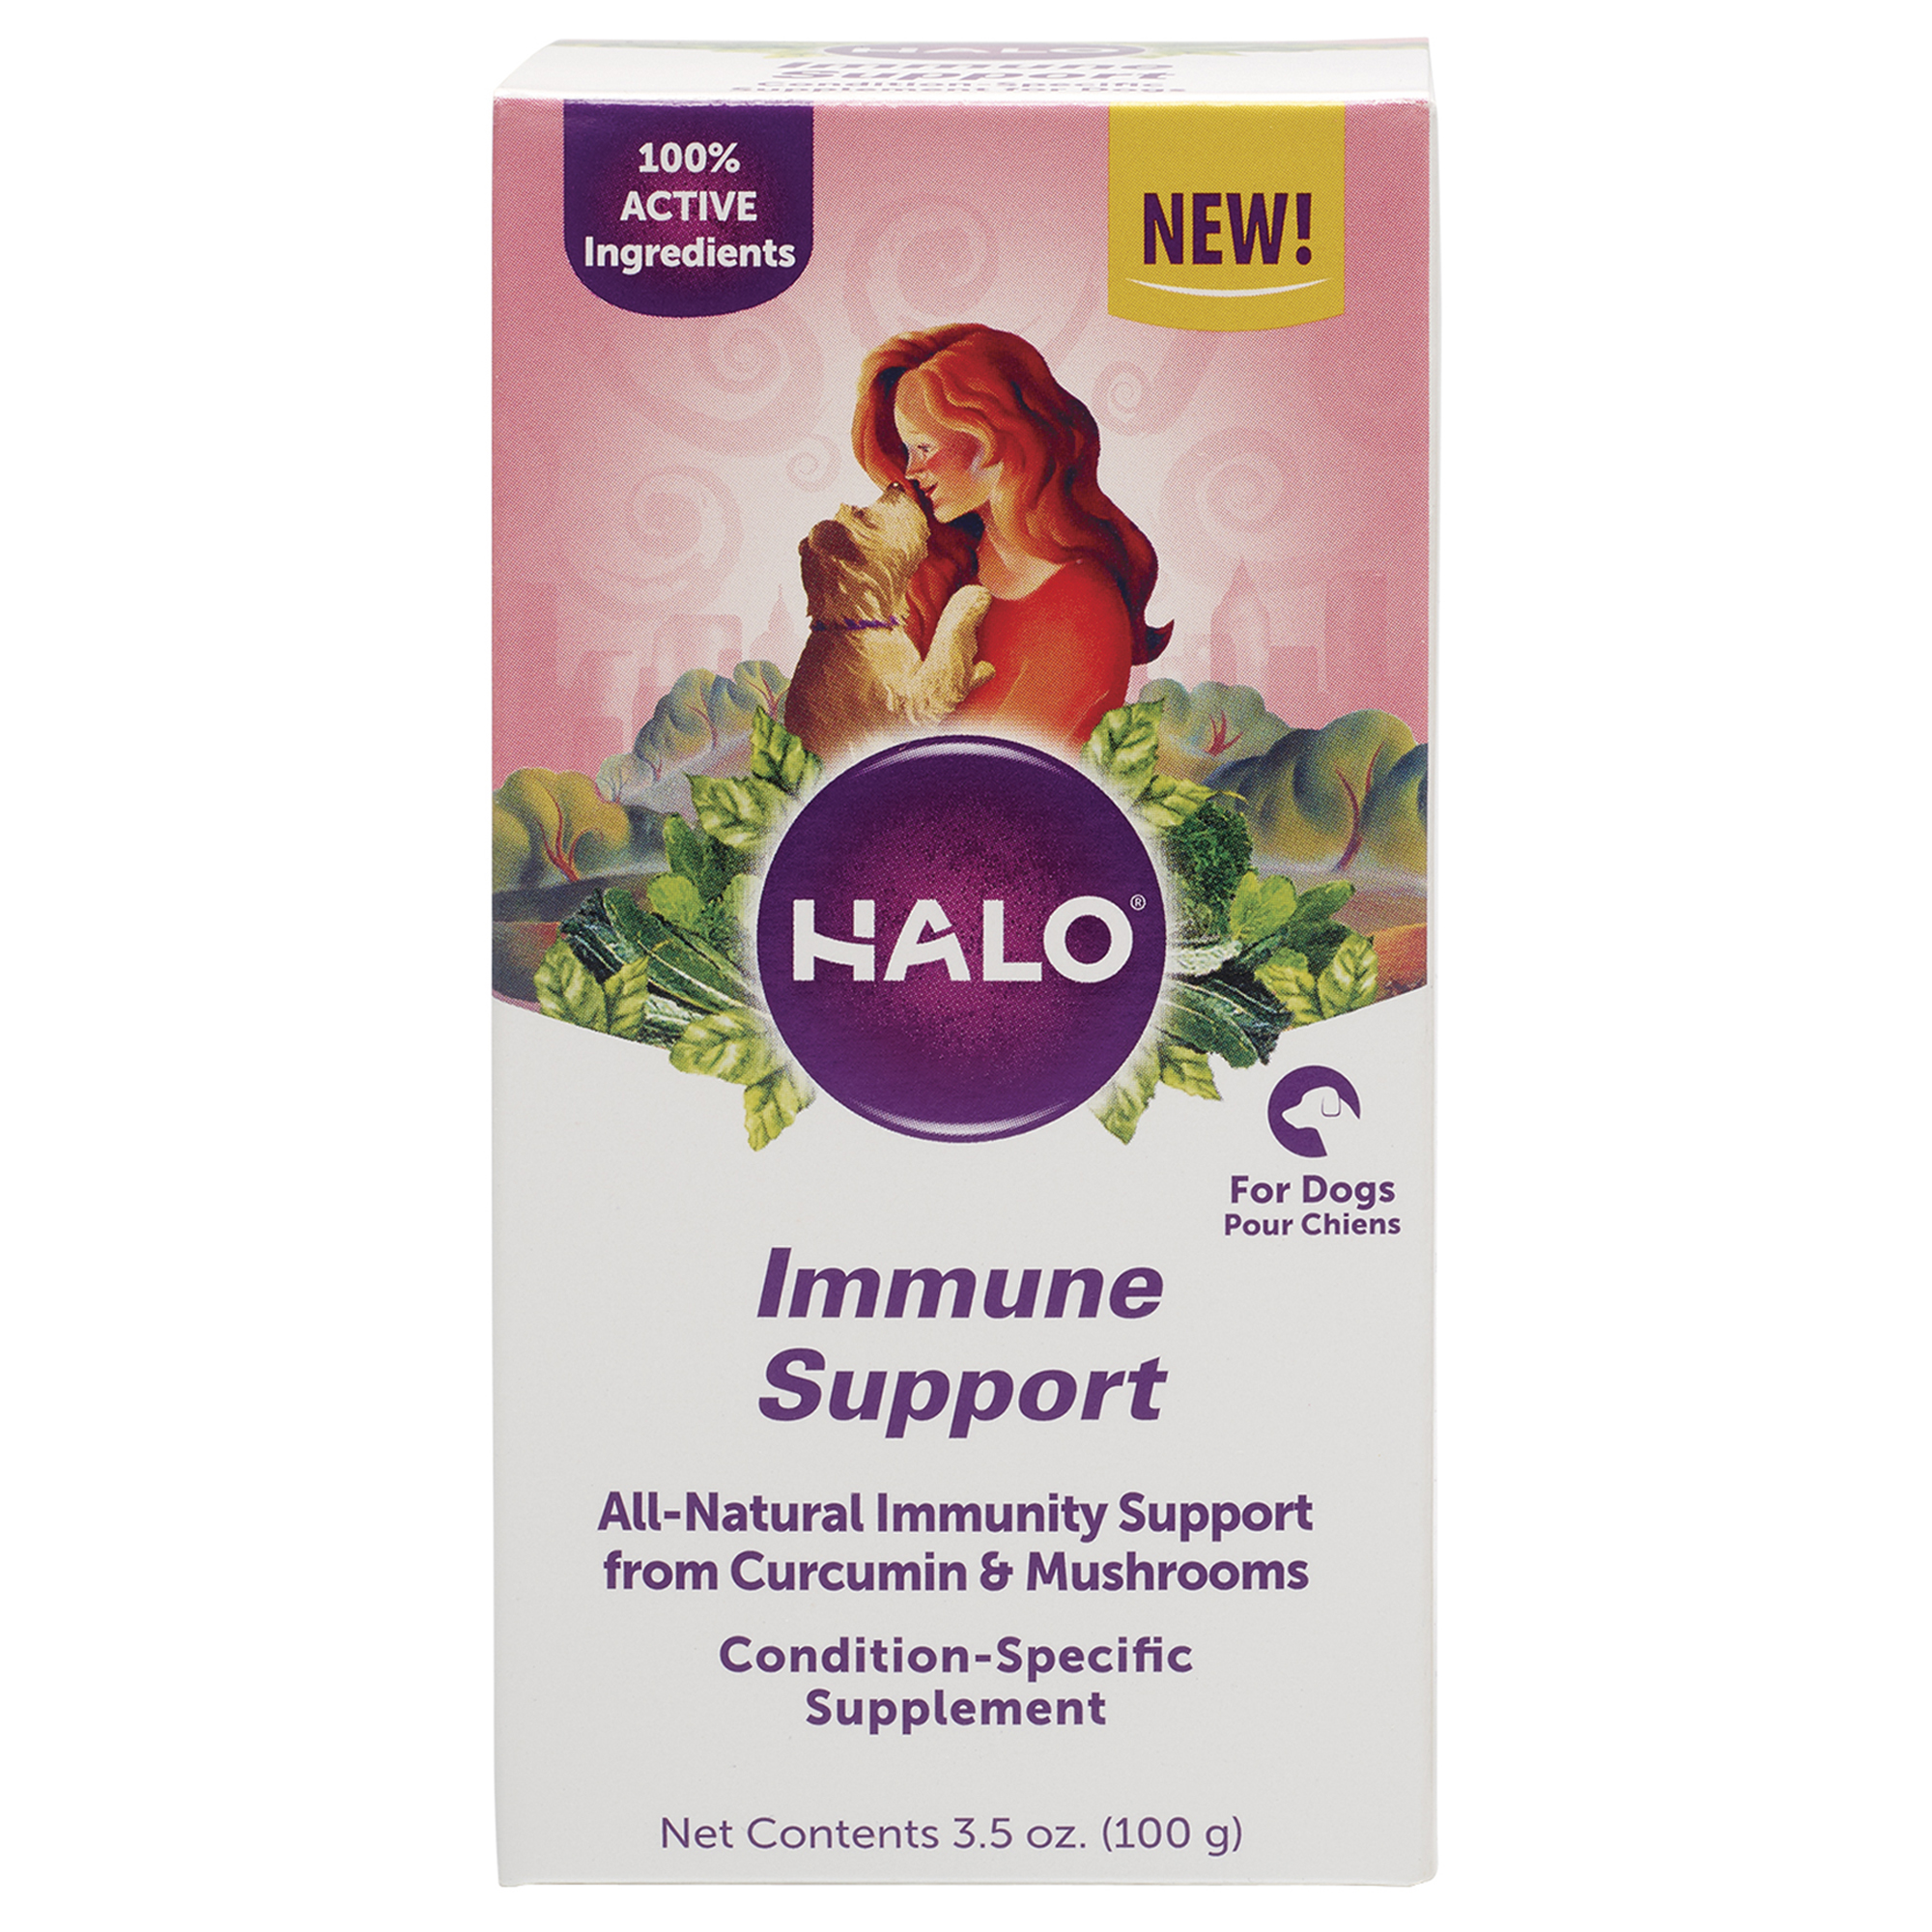 Halo Whole Food Immune Support Supplement for Dogs, 3.5 oz.